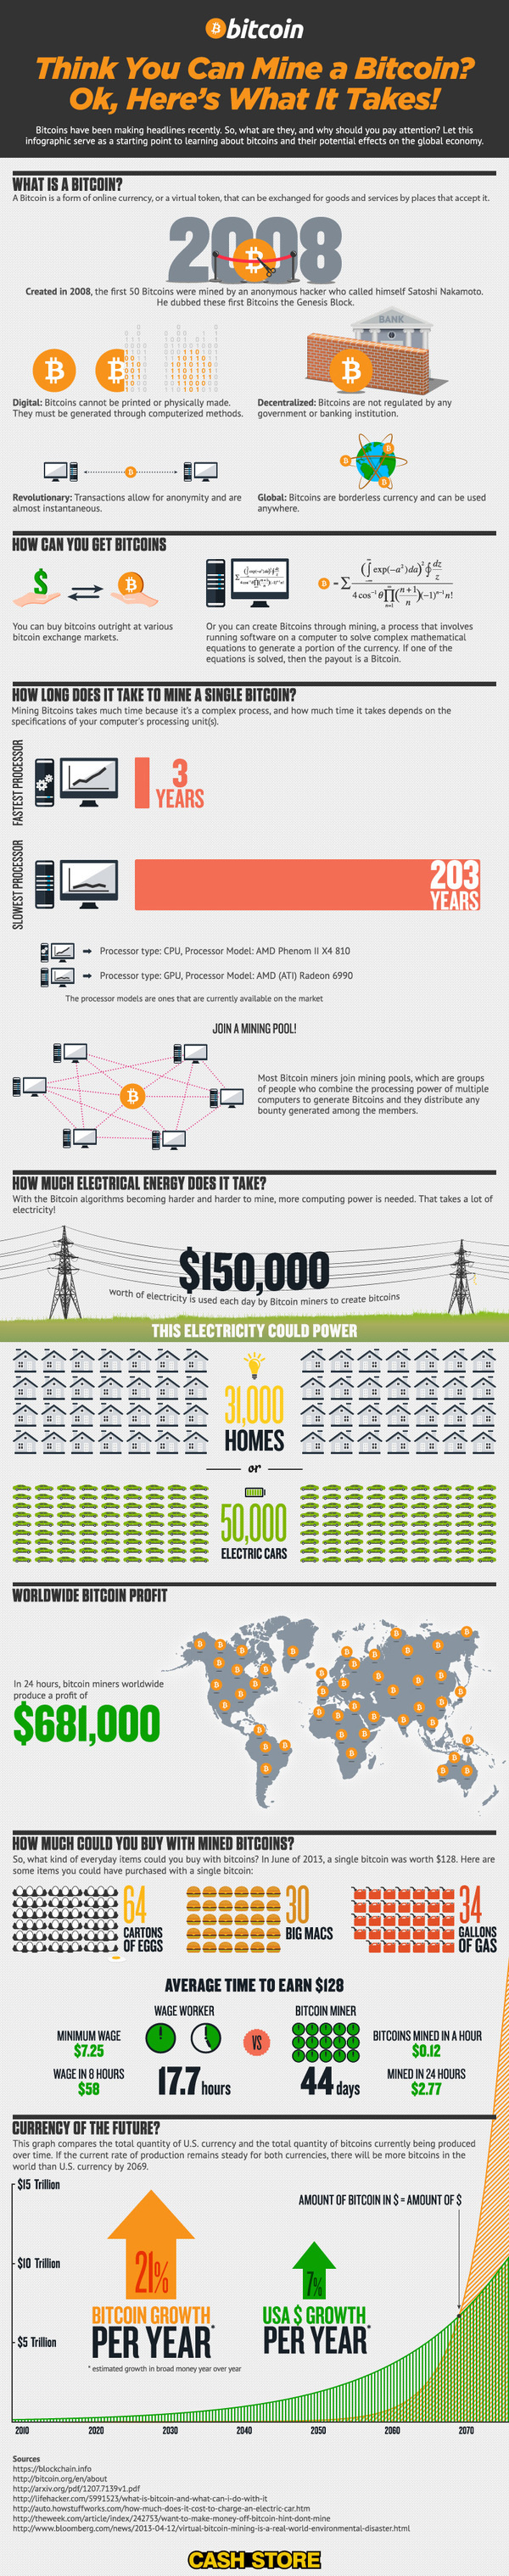 Understanding Bitcoin Mining and Its Effect Infographic #infographic #bitcoin